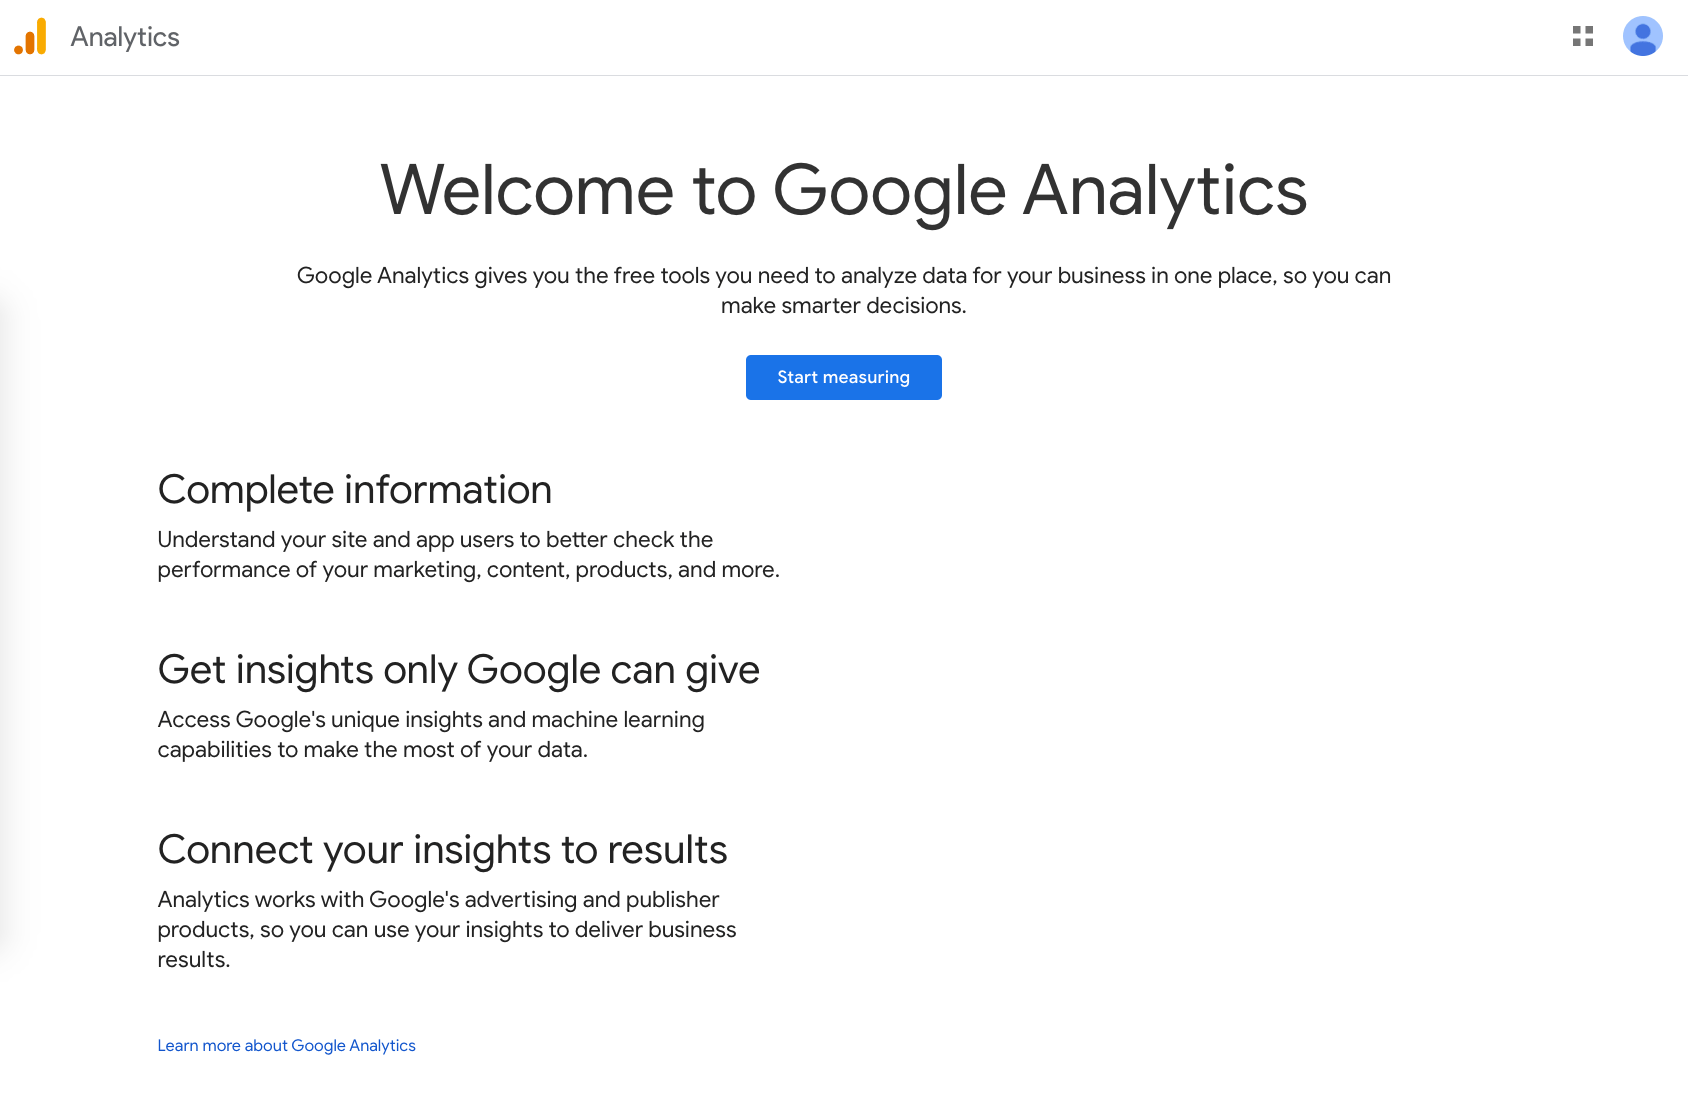 Google Analytics welcome